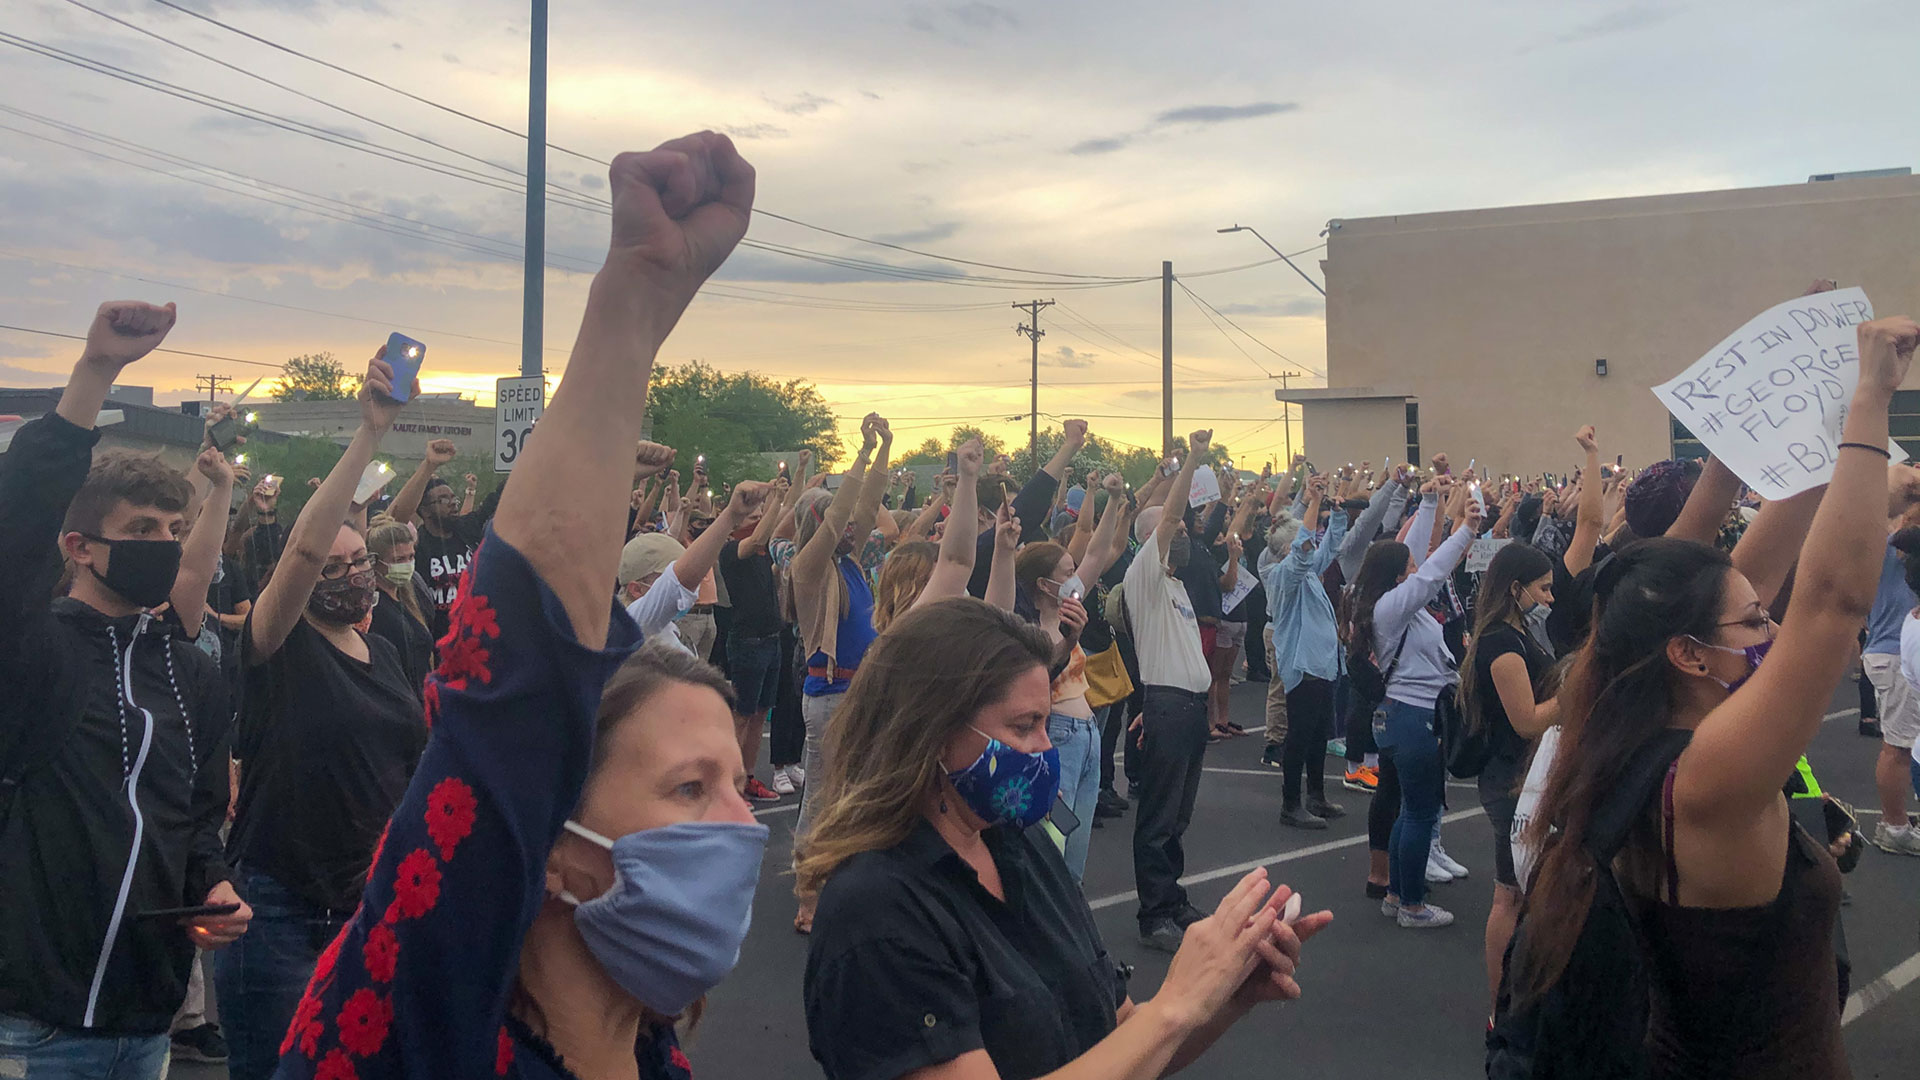 About 500 Tucsonans attended a vigil for George Floyd and other black people killed by police on June 1, 2020.